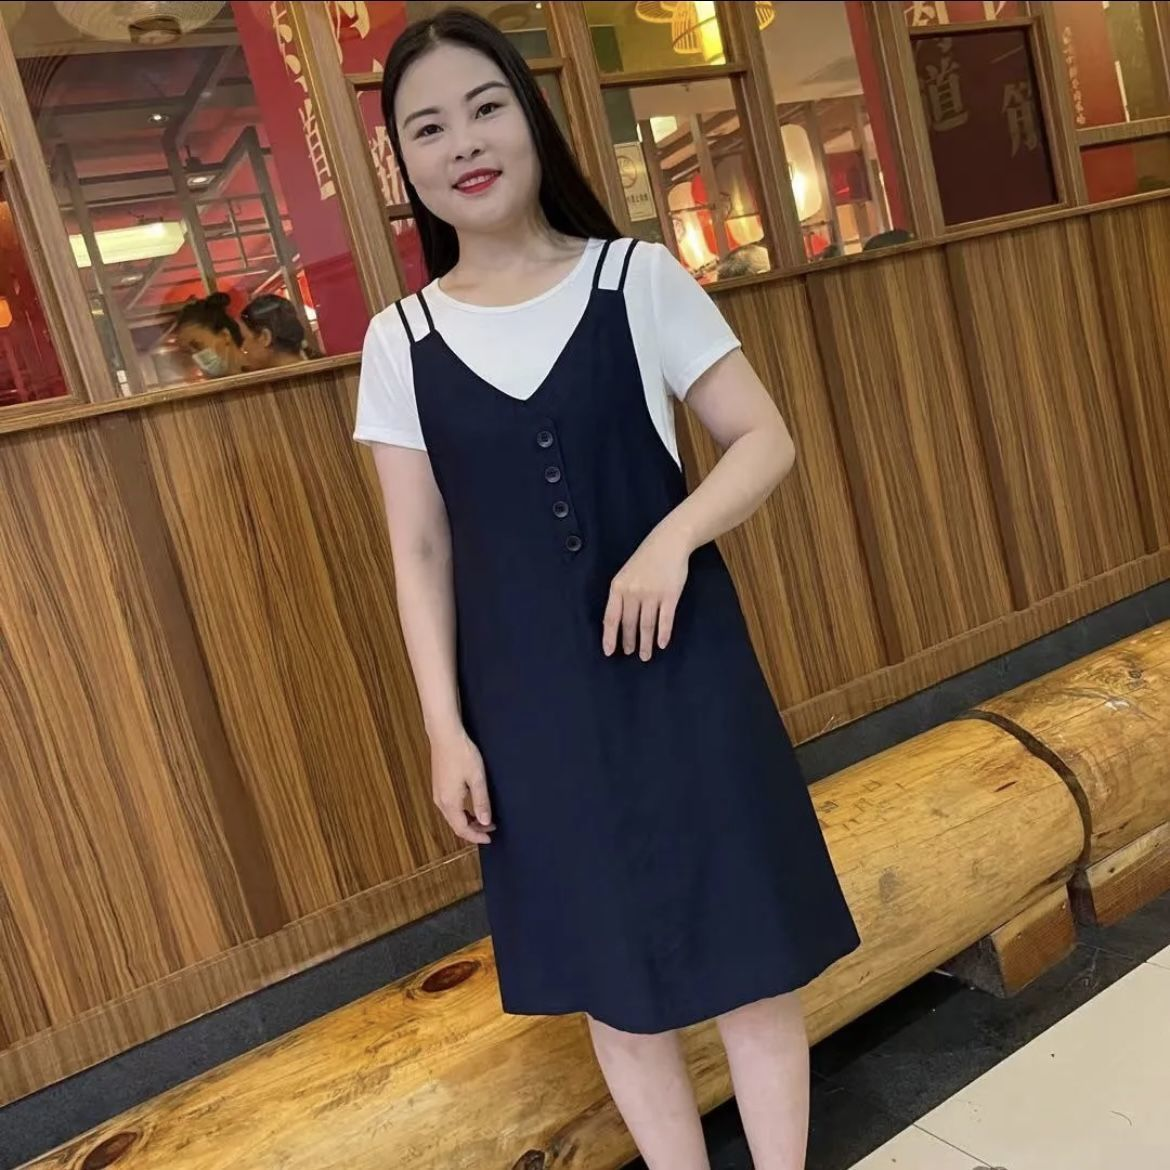 Strap dress middle-aged mother womens dress 2021 summer new leisure foreign style show thin fake two short sleeve skirts